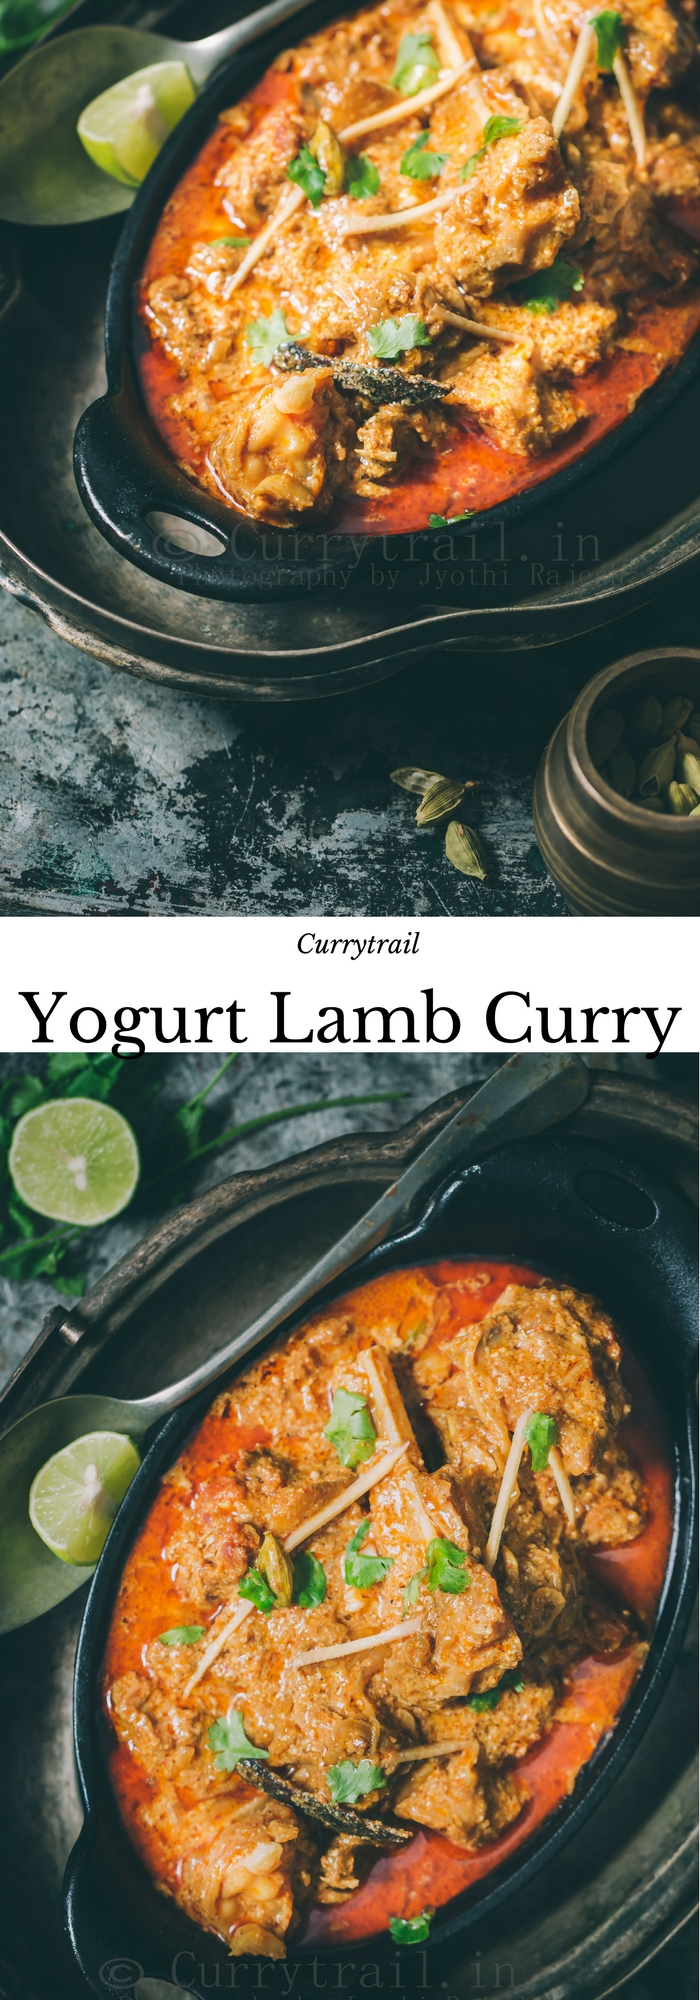 Yogurt Lamb Curry